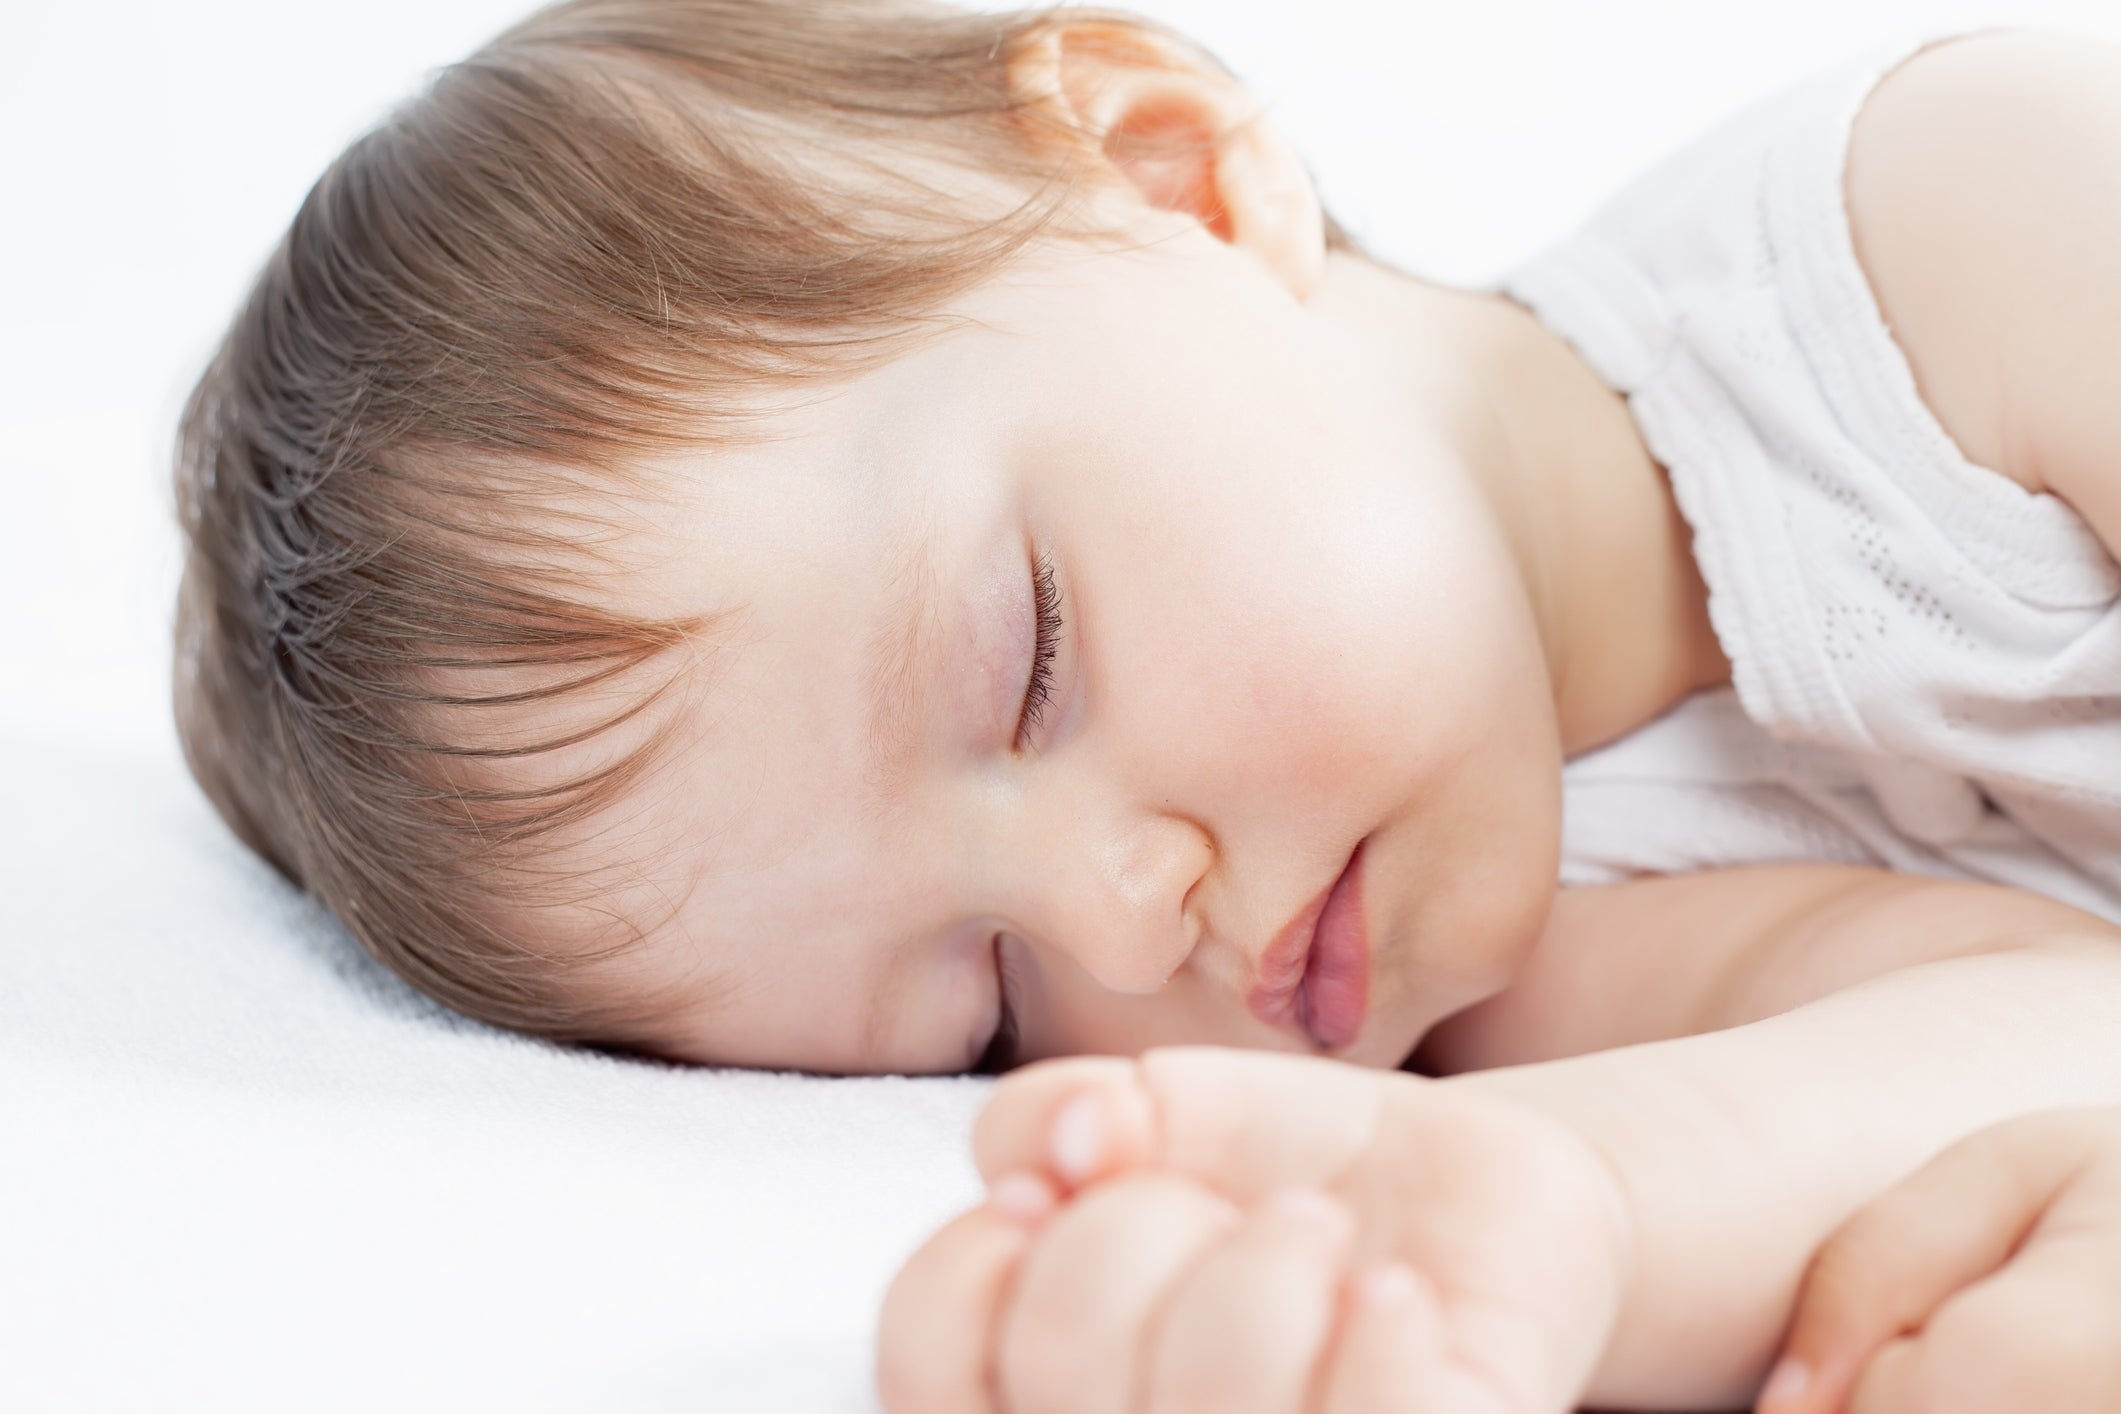 Young child in deep sleep